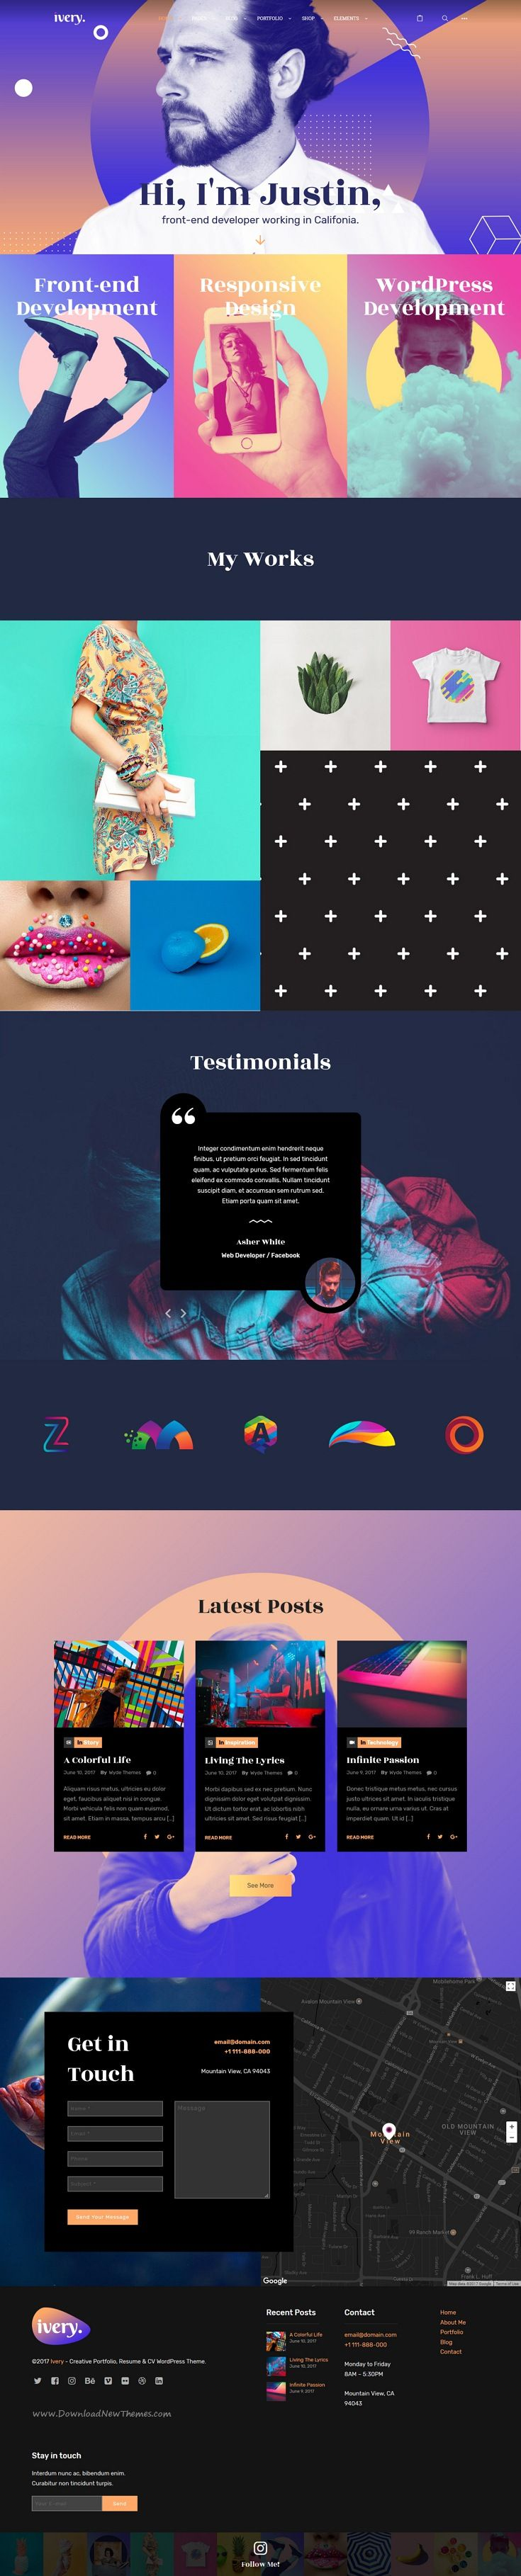 ivery is clean and modern design 5in1 responsive  wordpress theme for creative  resume  cv and